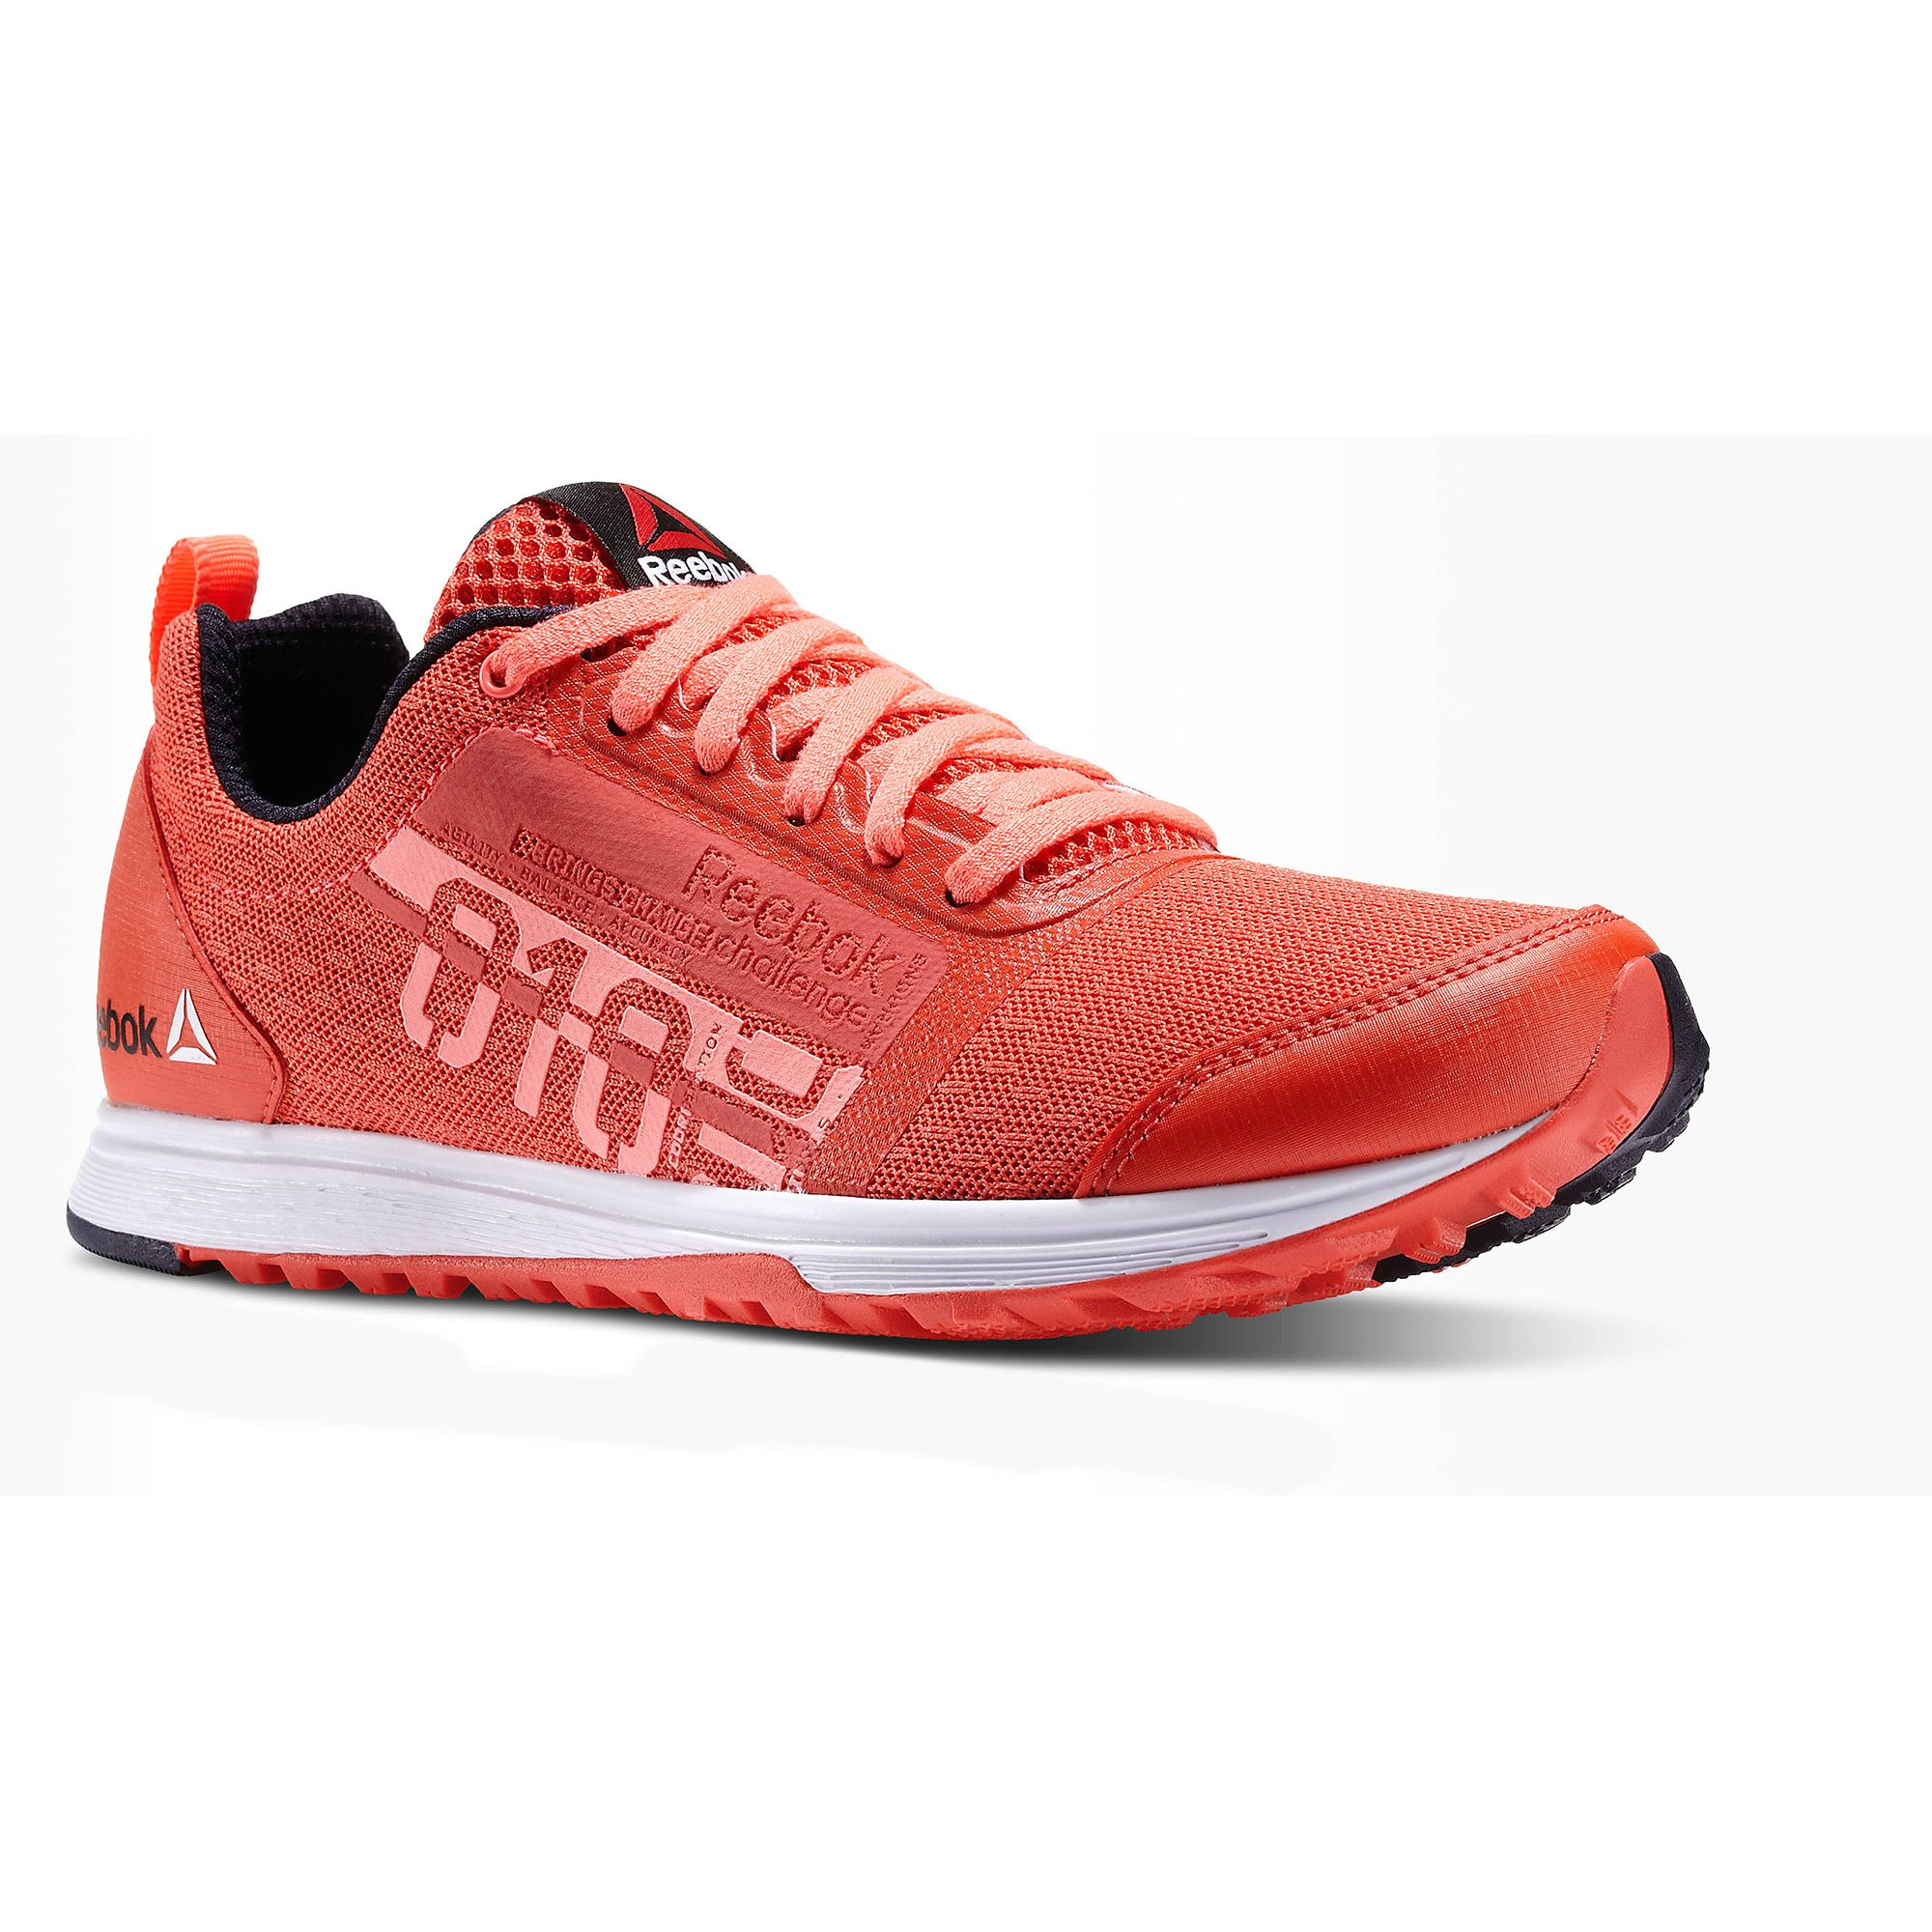 Reebok-running-shoes-and-sportsshoes-for-women (27)